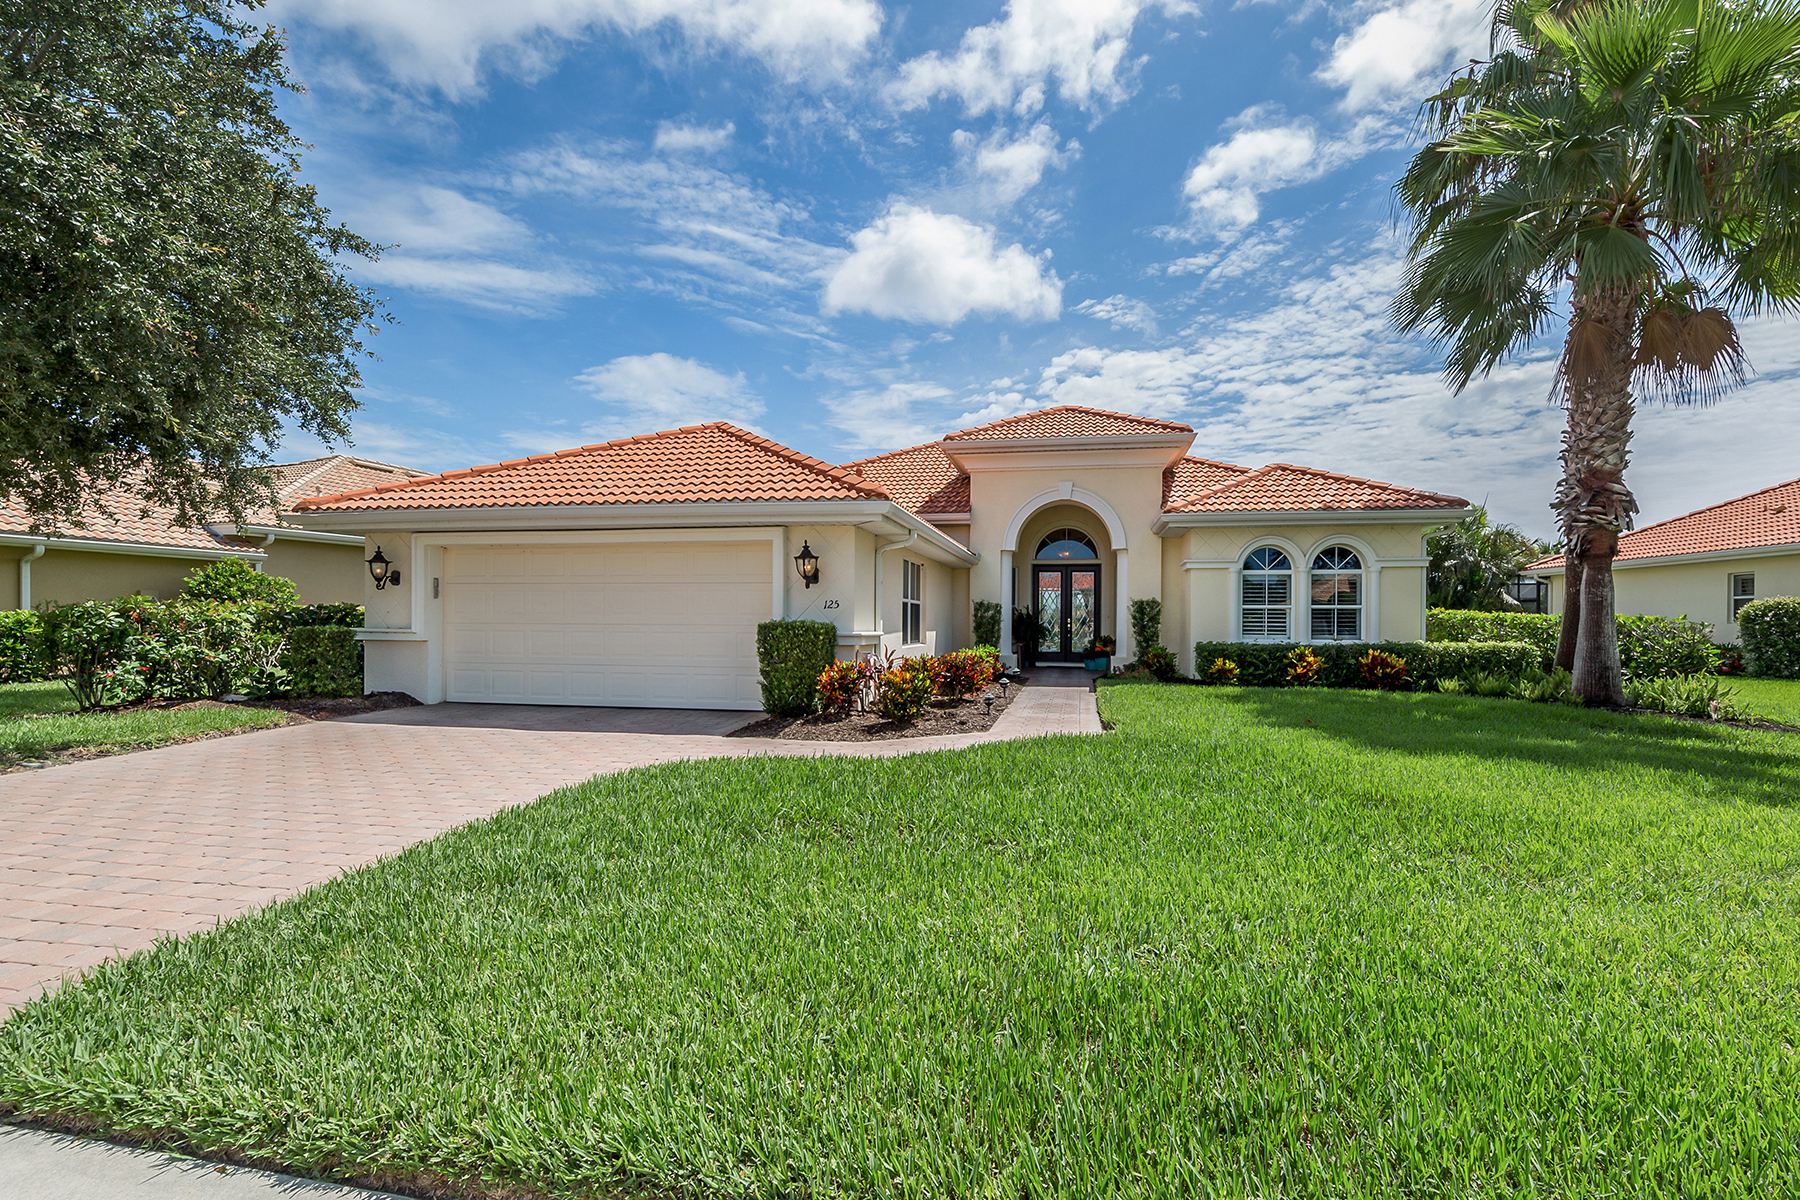 Single Family Homes for Sale at VENETIAN GOLF & RIVER CLUB 125 Medici Ter, North Venice, Florida 34275 United States